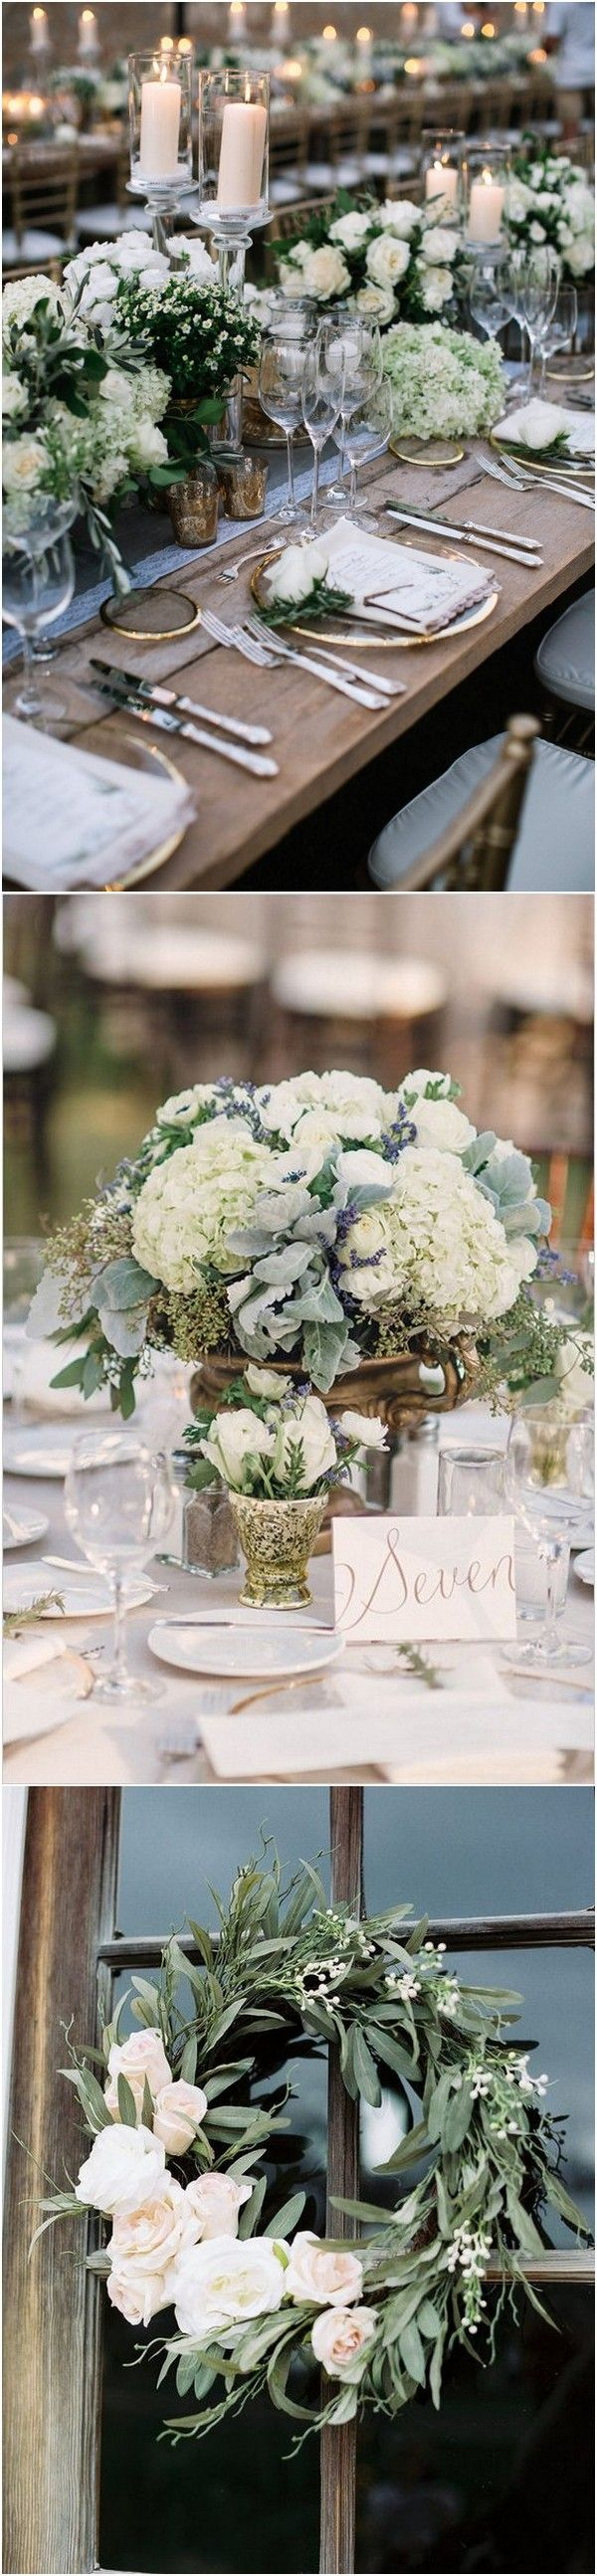 Wedding decorations for reception january 2019  Sage Green Wedding Ideas for  Trends  Page  of  in